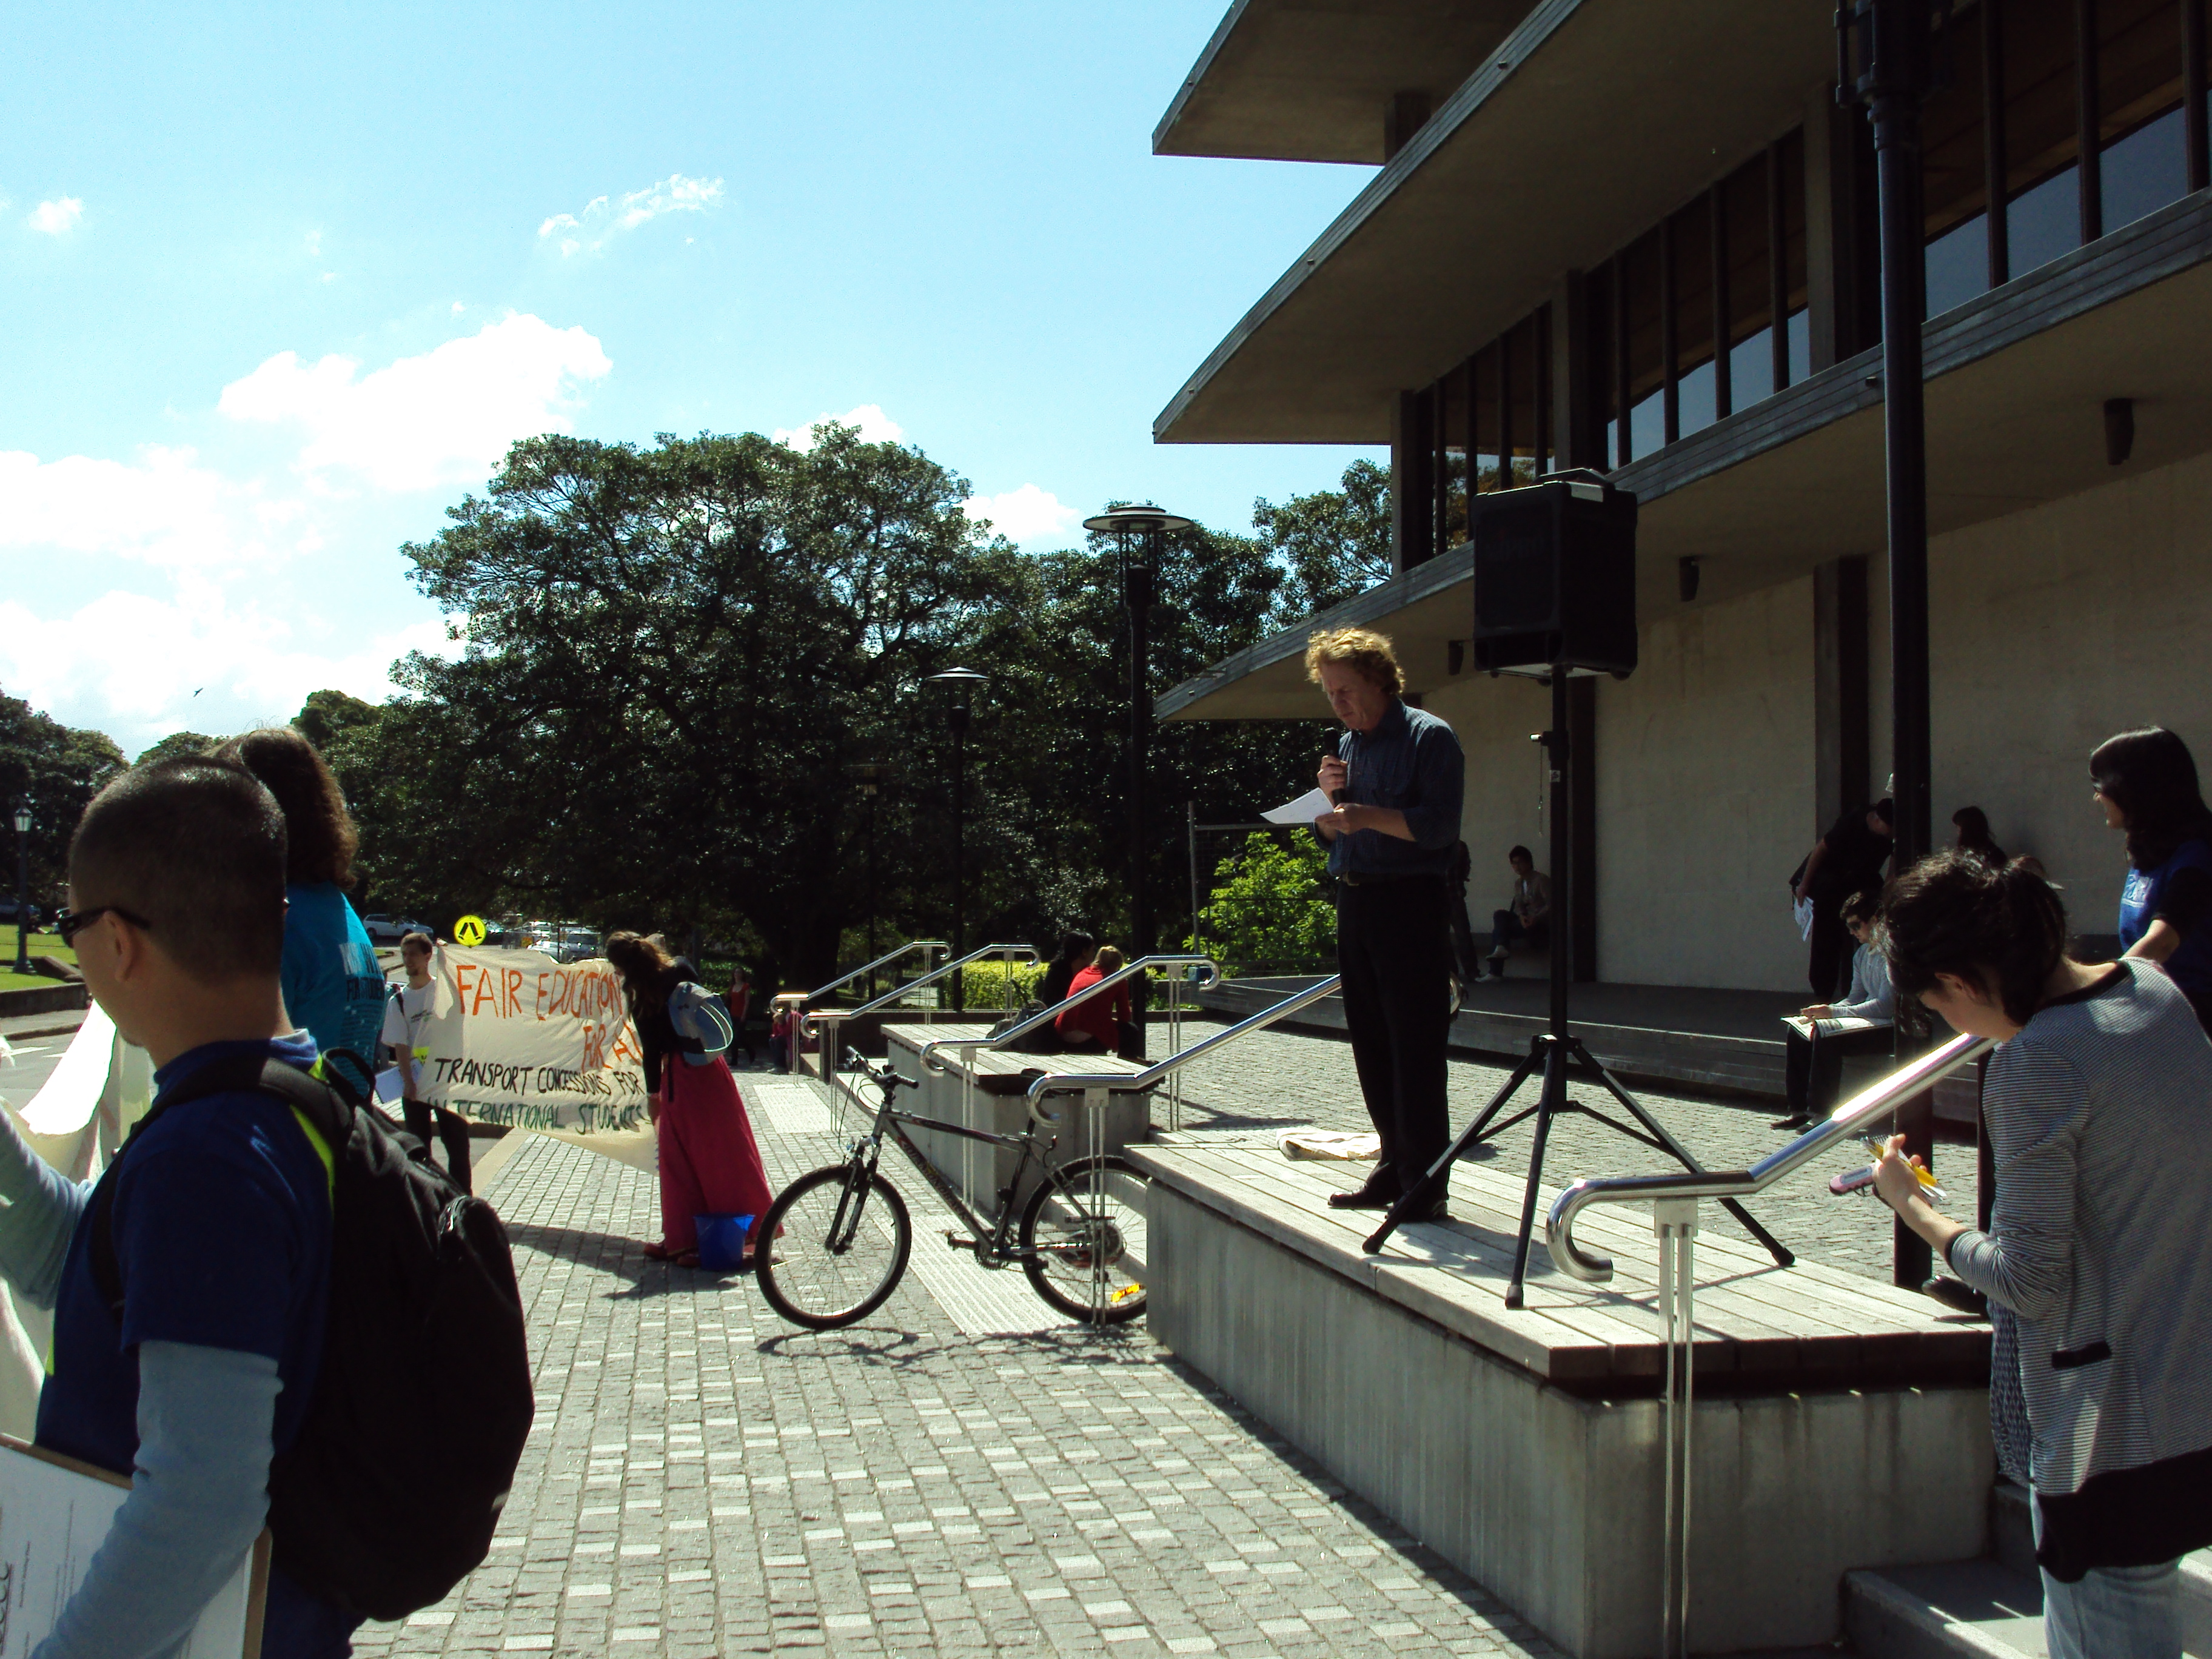 At Sydney U, outside Fisher Library